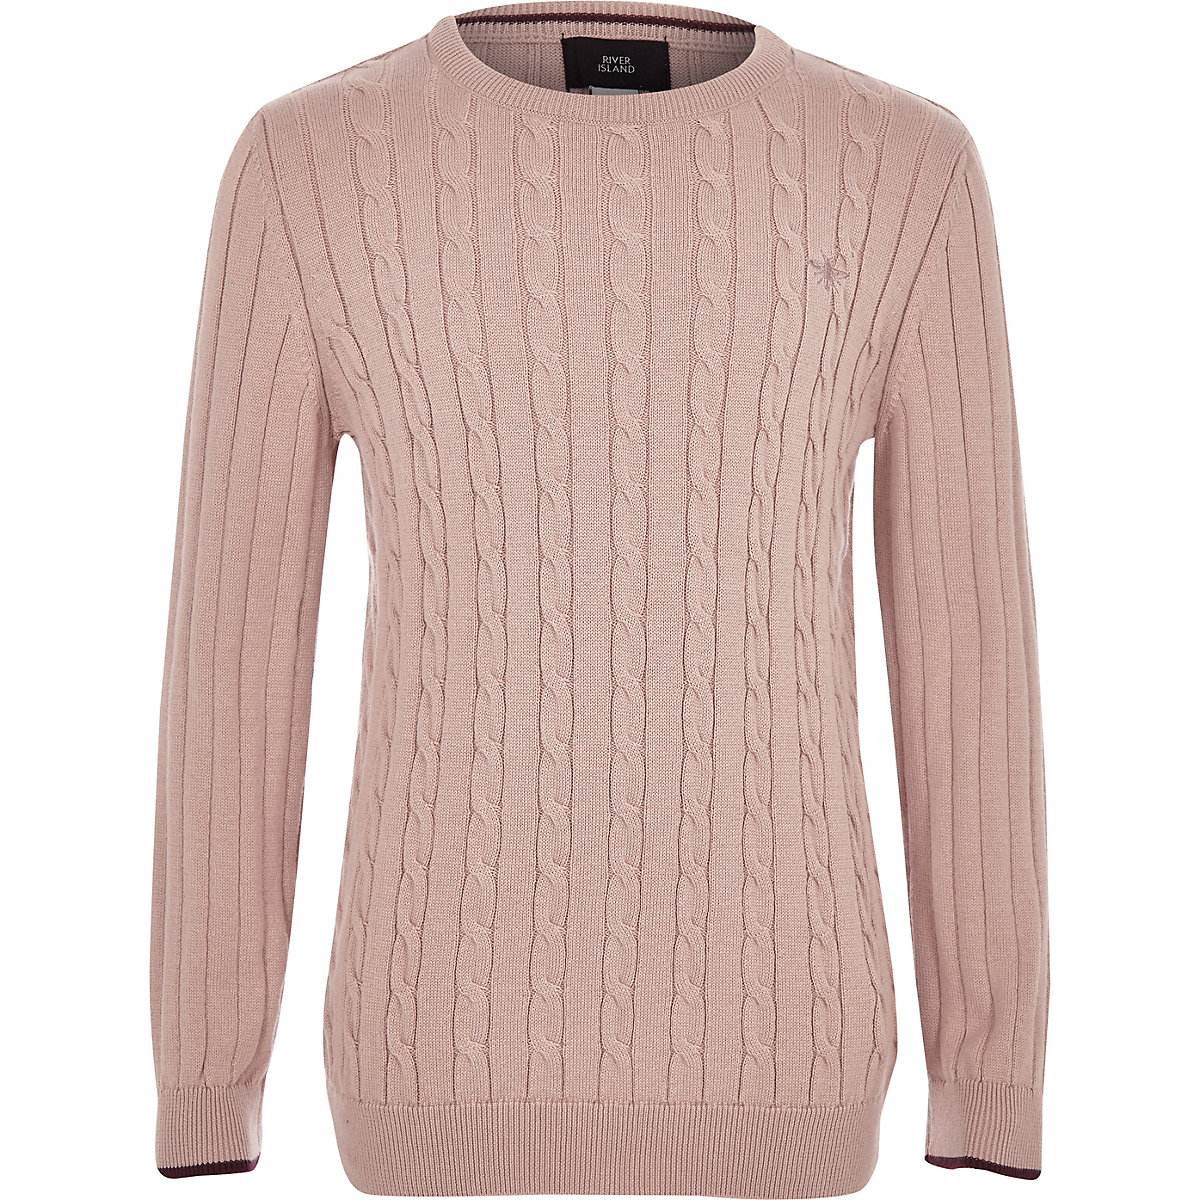 Pinker Pullover mit Zopfmuster